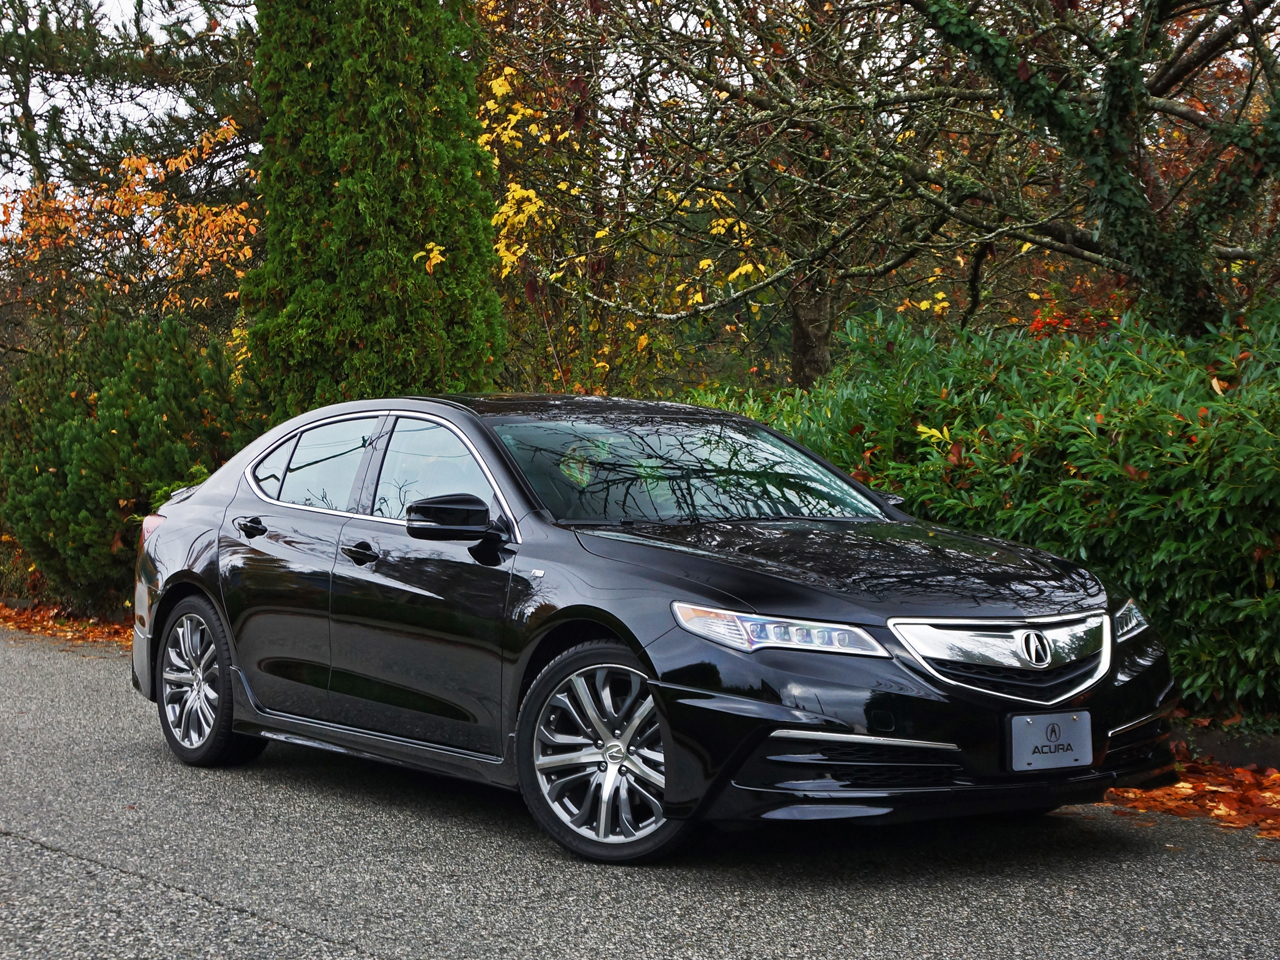 2017 acura tlx sh awd tech a spec road test review carcostcanada. Black Bedroom Furniture Sets. Home Design Ideas